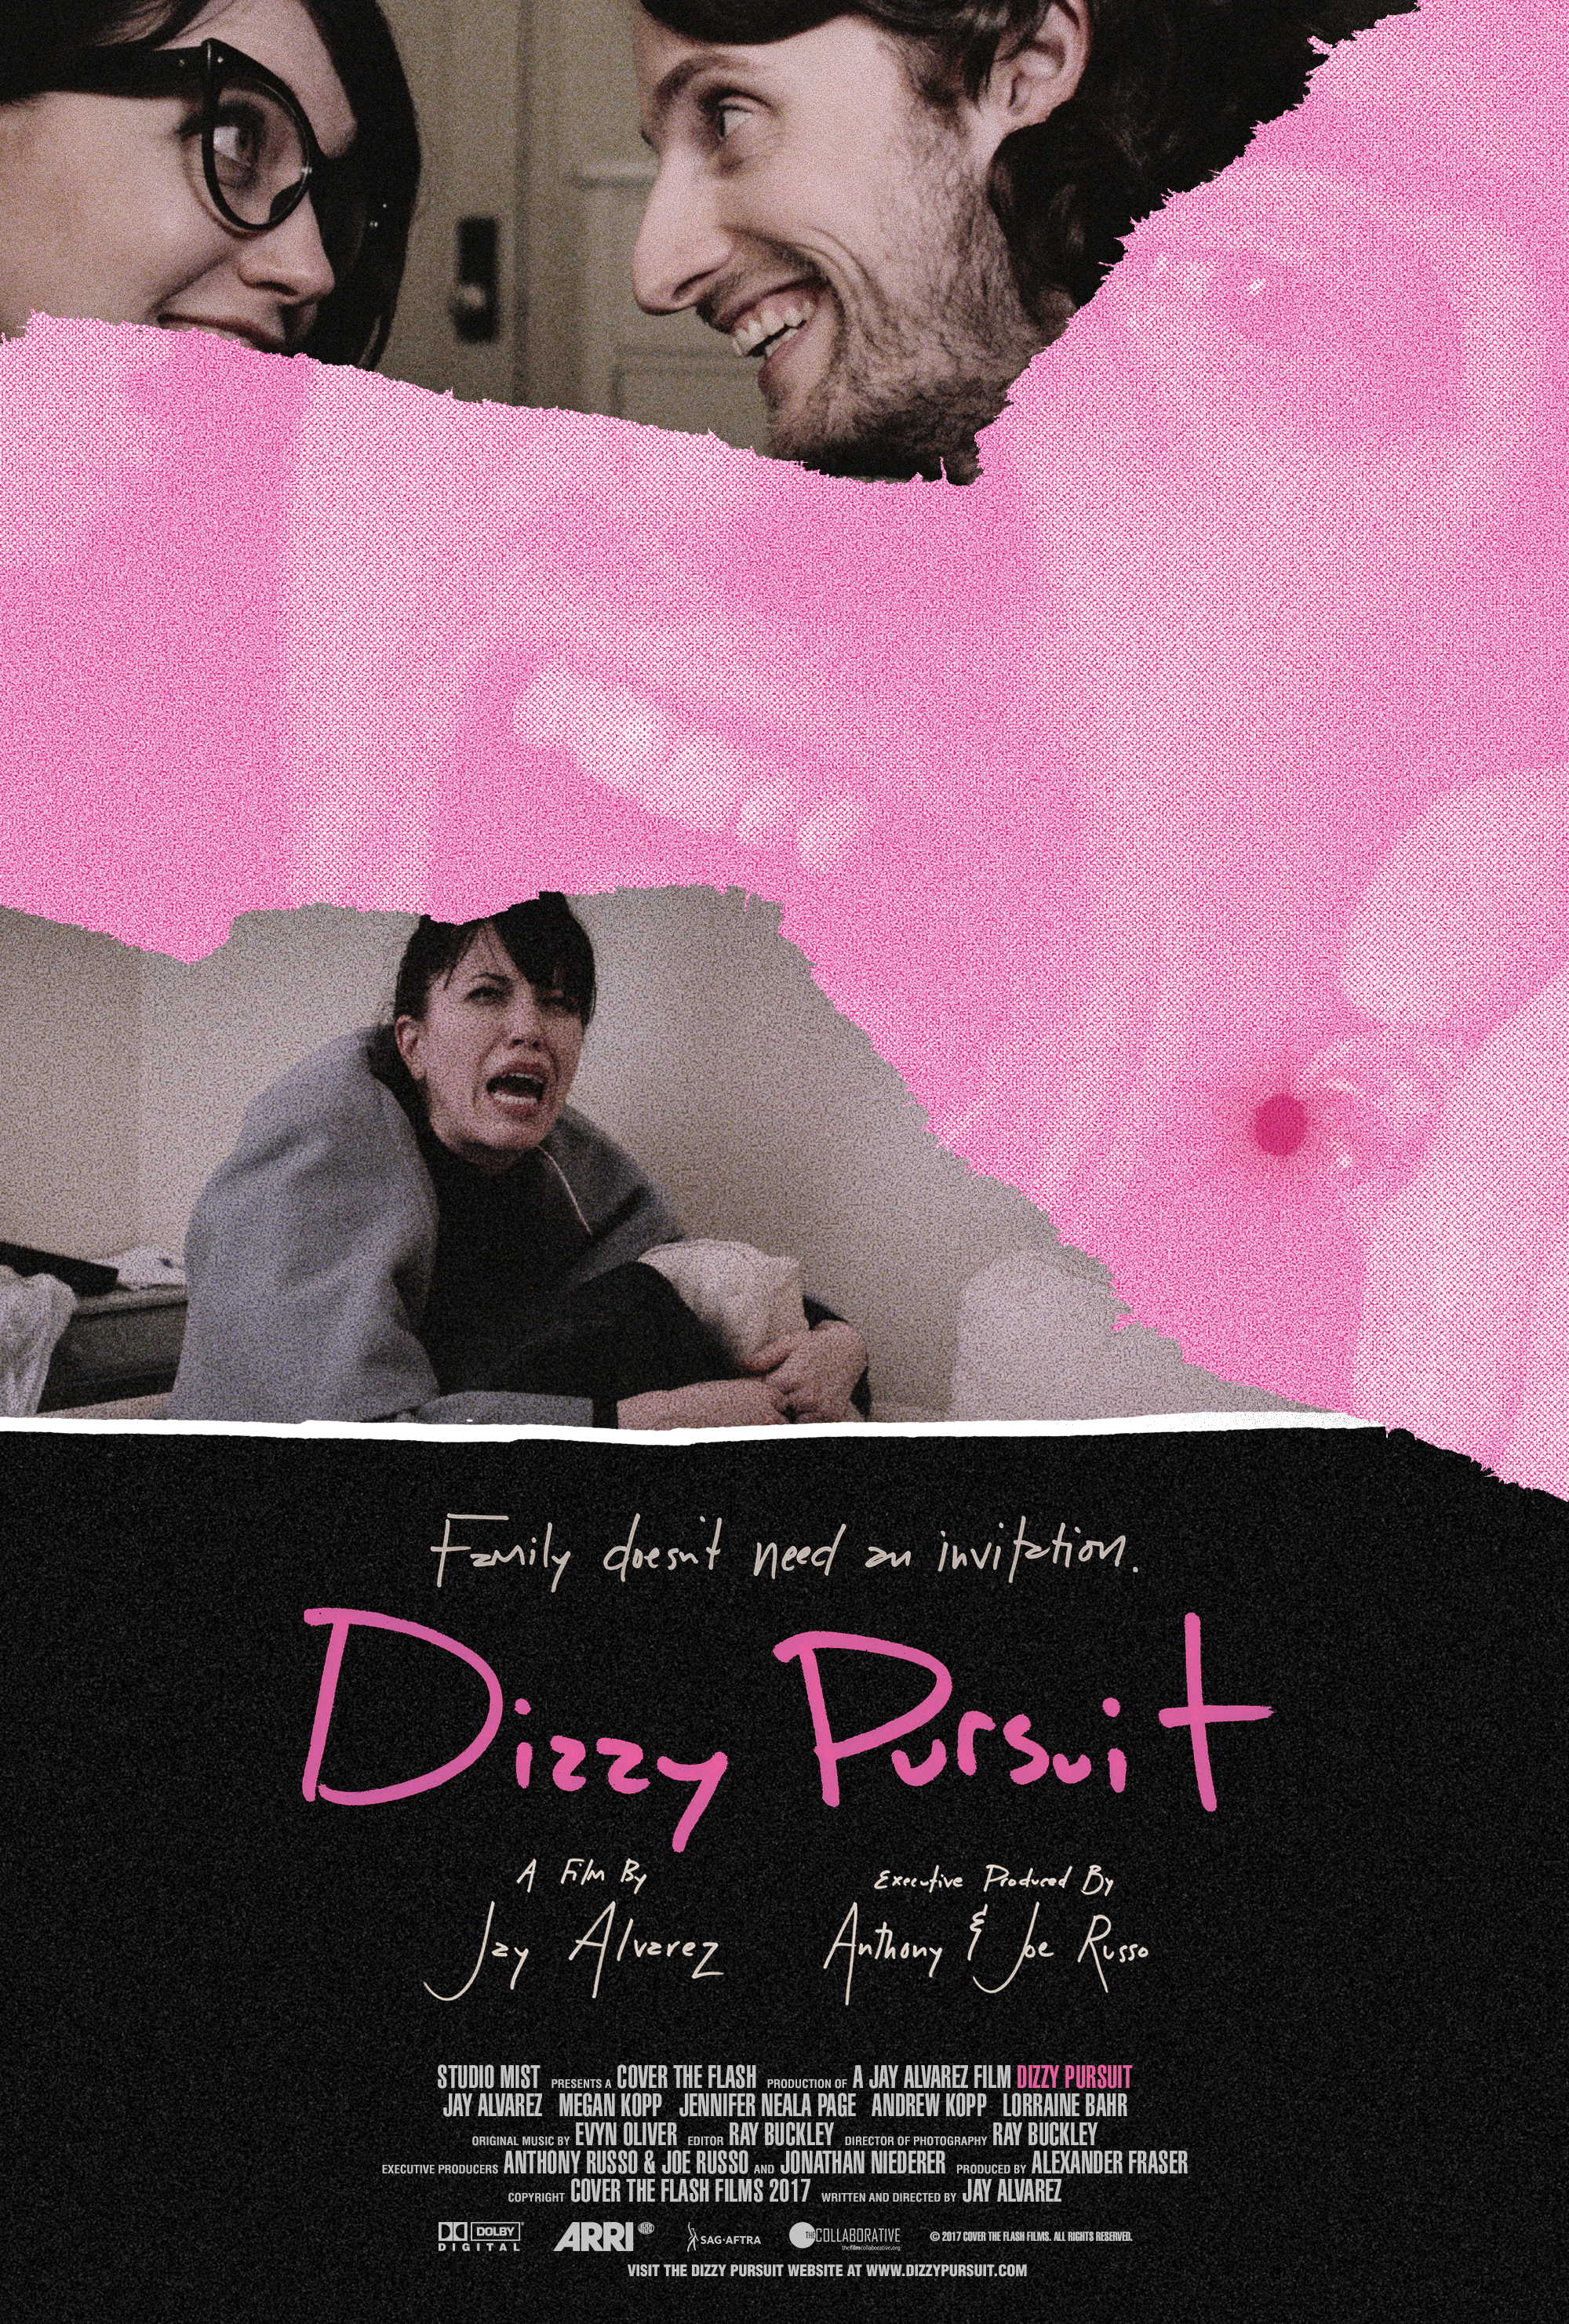 pSGibson_dizzyPursuit_filmPoster_5final.jpg